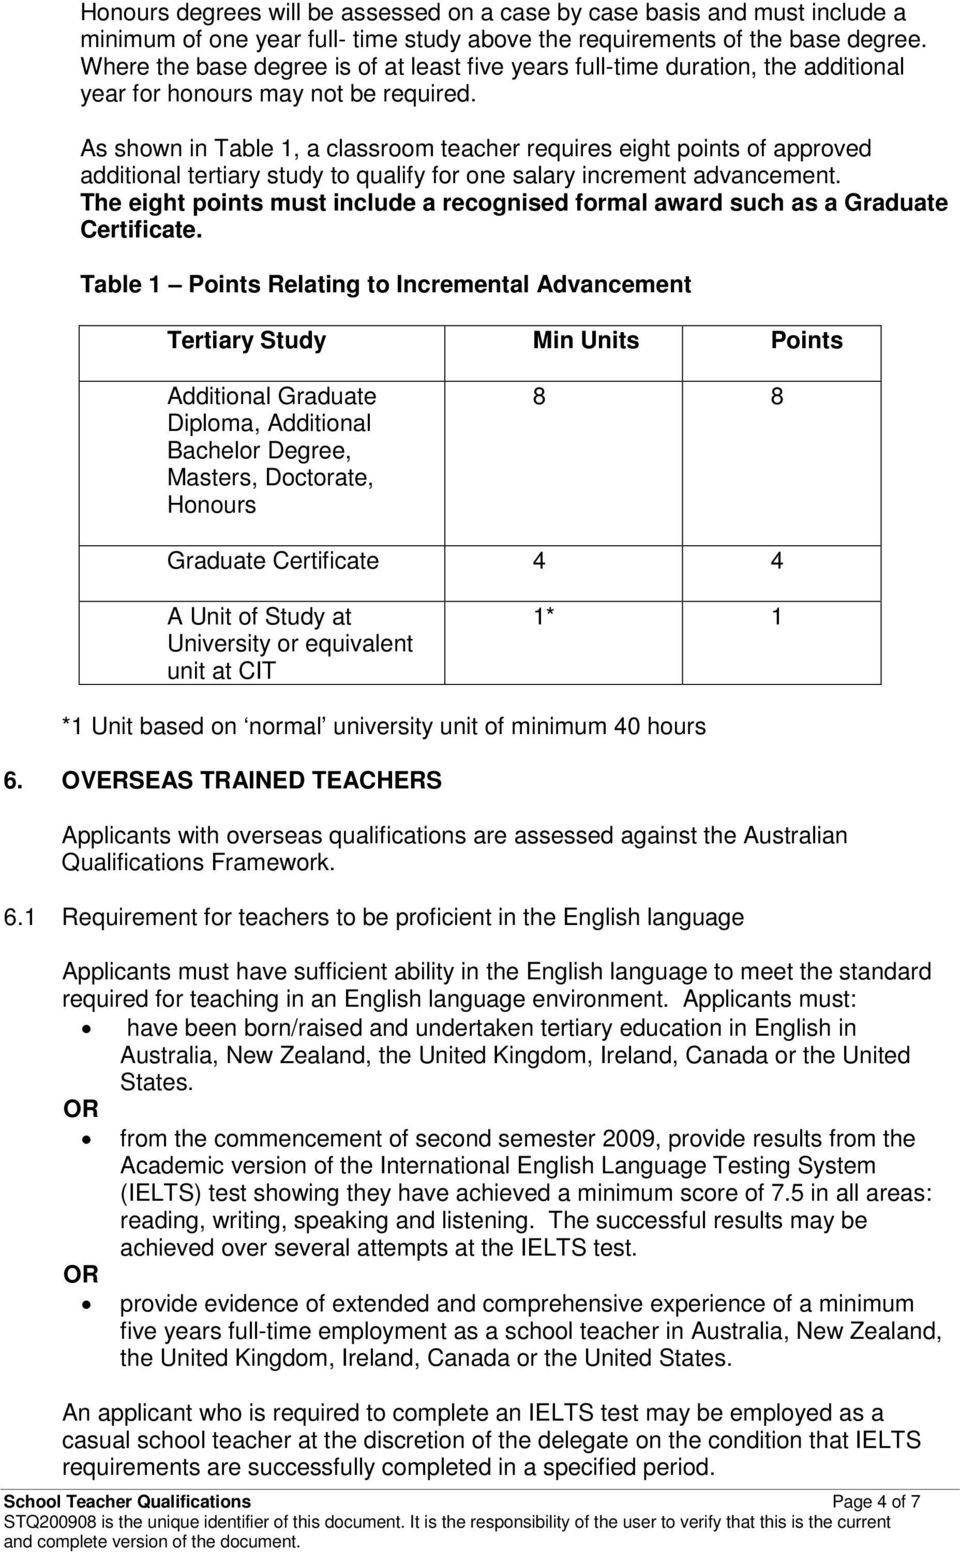 As shown in Table 1, a classroom teacher requires eight points of approved additional tertiary study to qualify for one salary increment advancement.